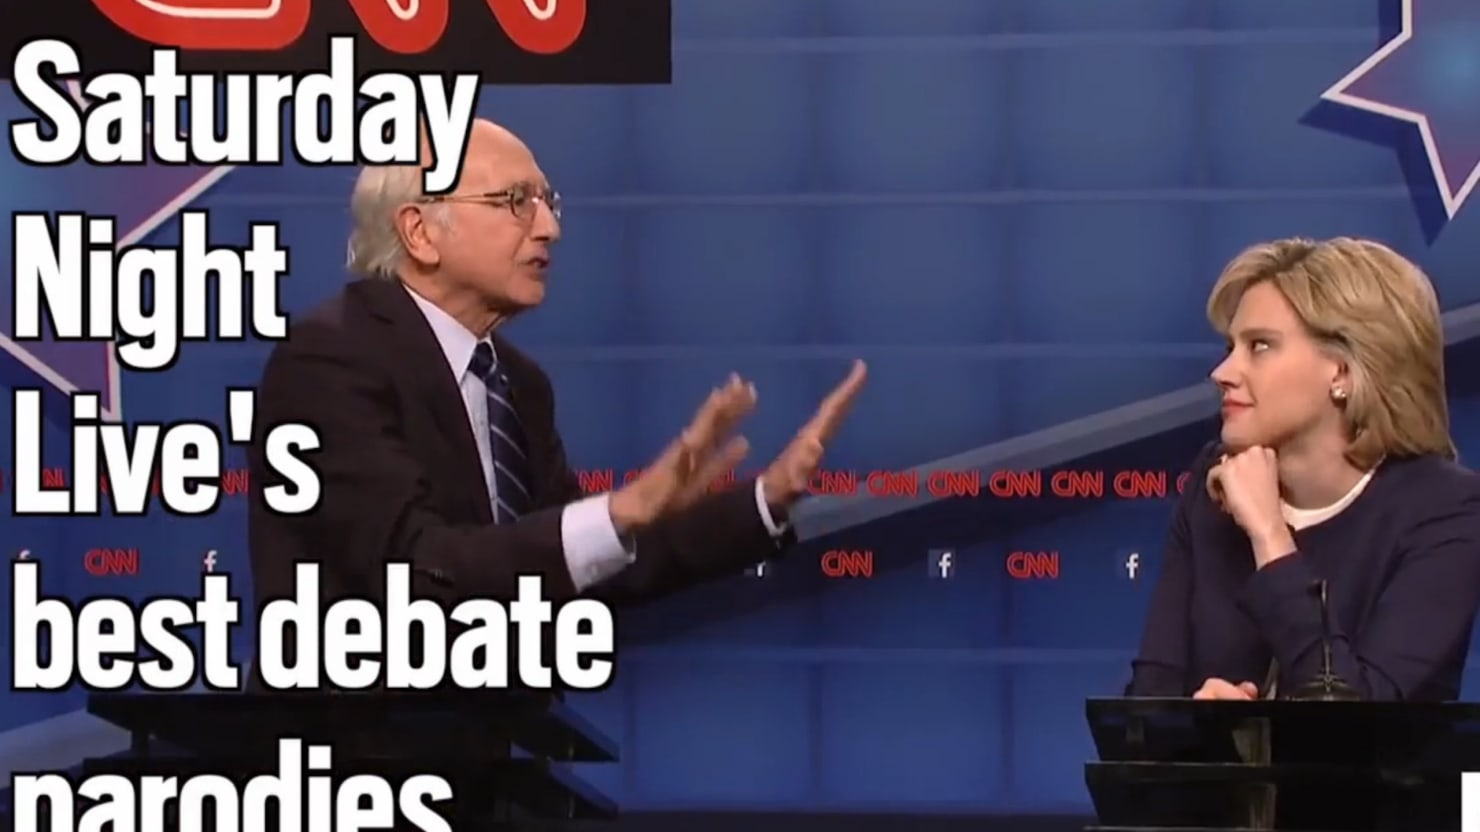 Watch: Saturday Night Live's Best Fake Debates